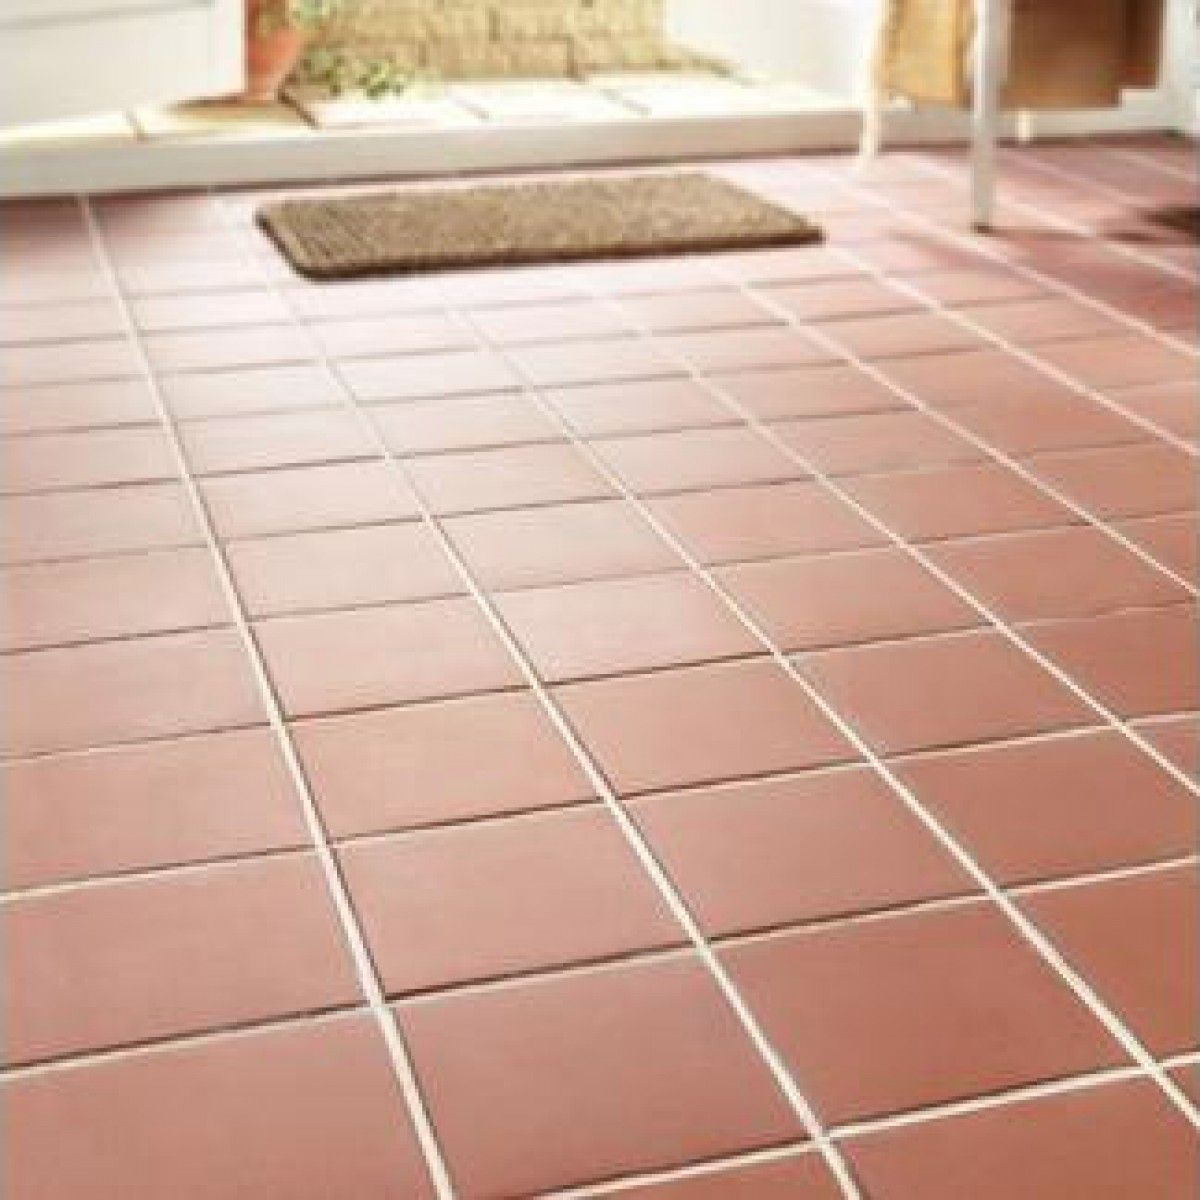 Red quarry floor tiles choice image home flooring design sima red quarry floor tile quarry tiled floors pinterest sima red quarry floor tile marialoaizafo choice dailygadgetfo Choice Image